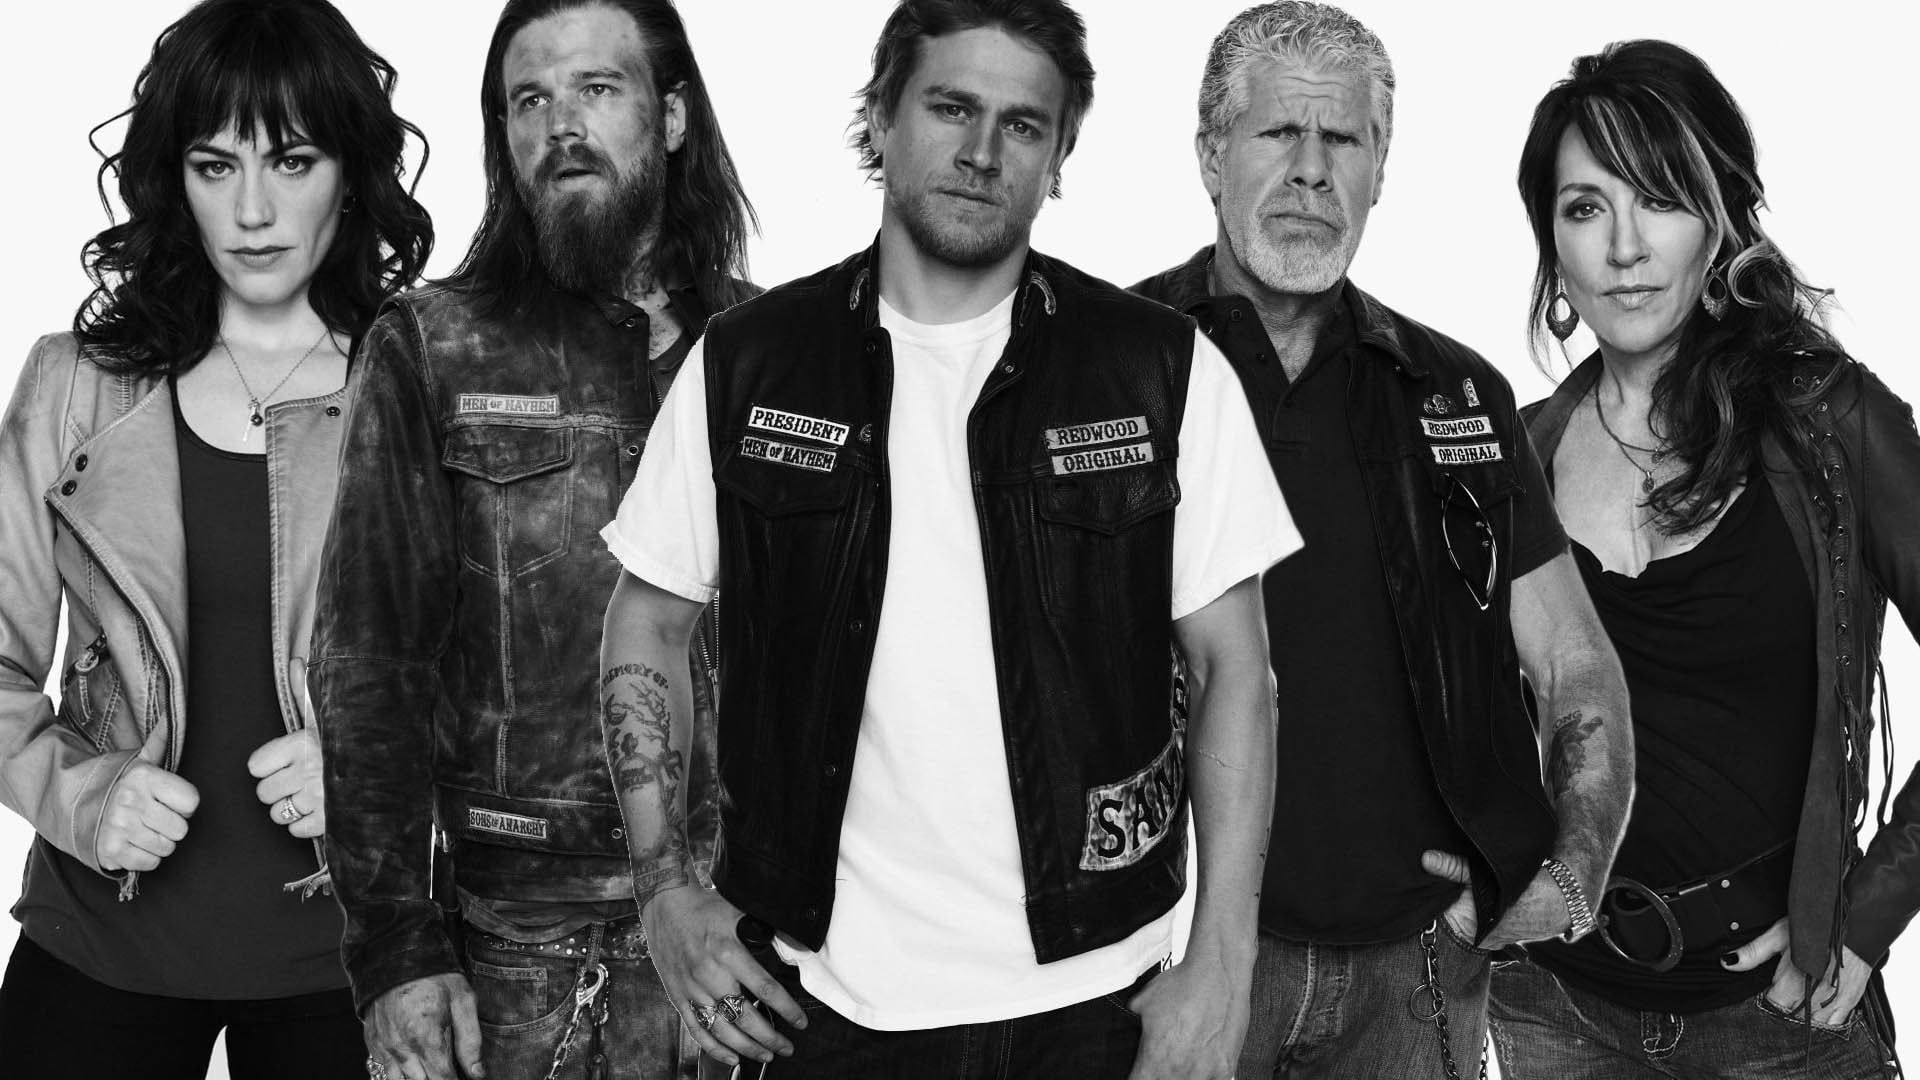 Pin By Kzk007 On Sons Of Anarchy Sons Of Anarchy Sons Of Anarchy Cast Anarchy